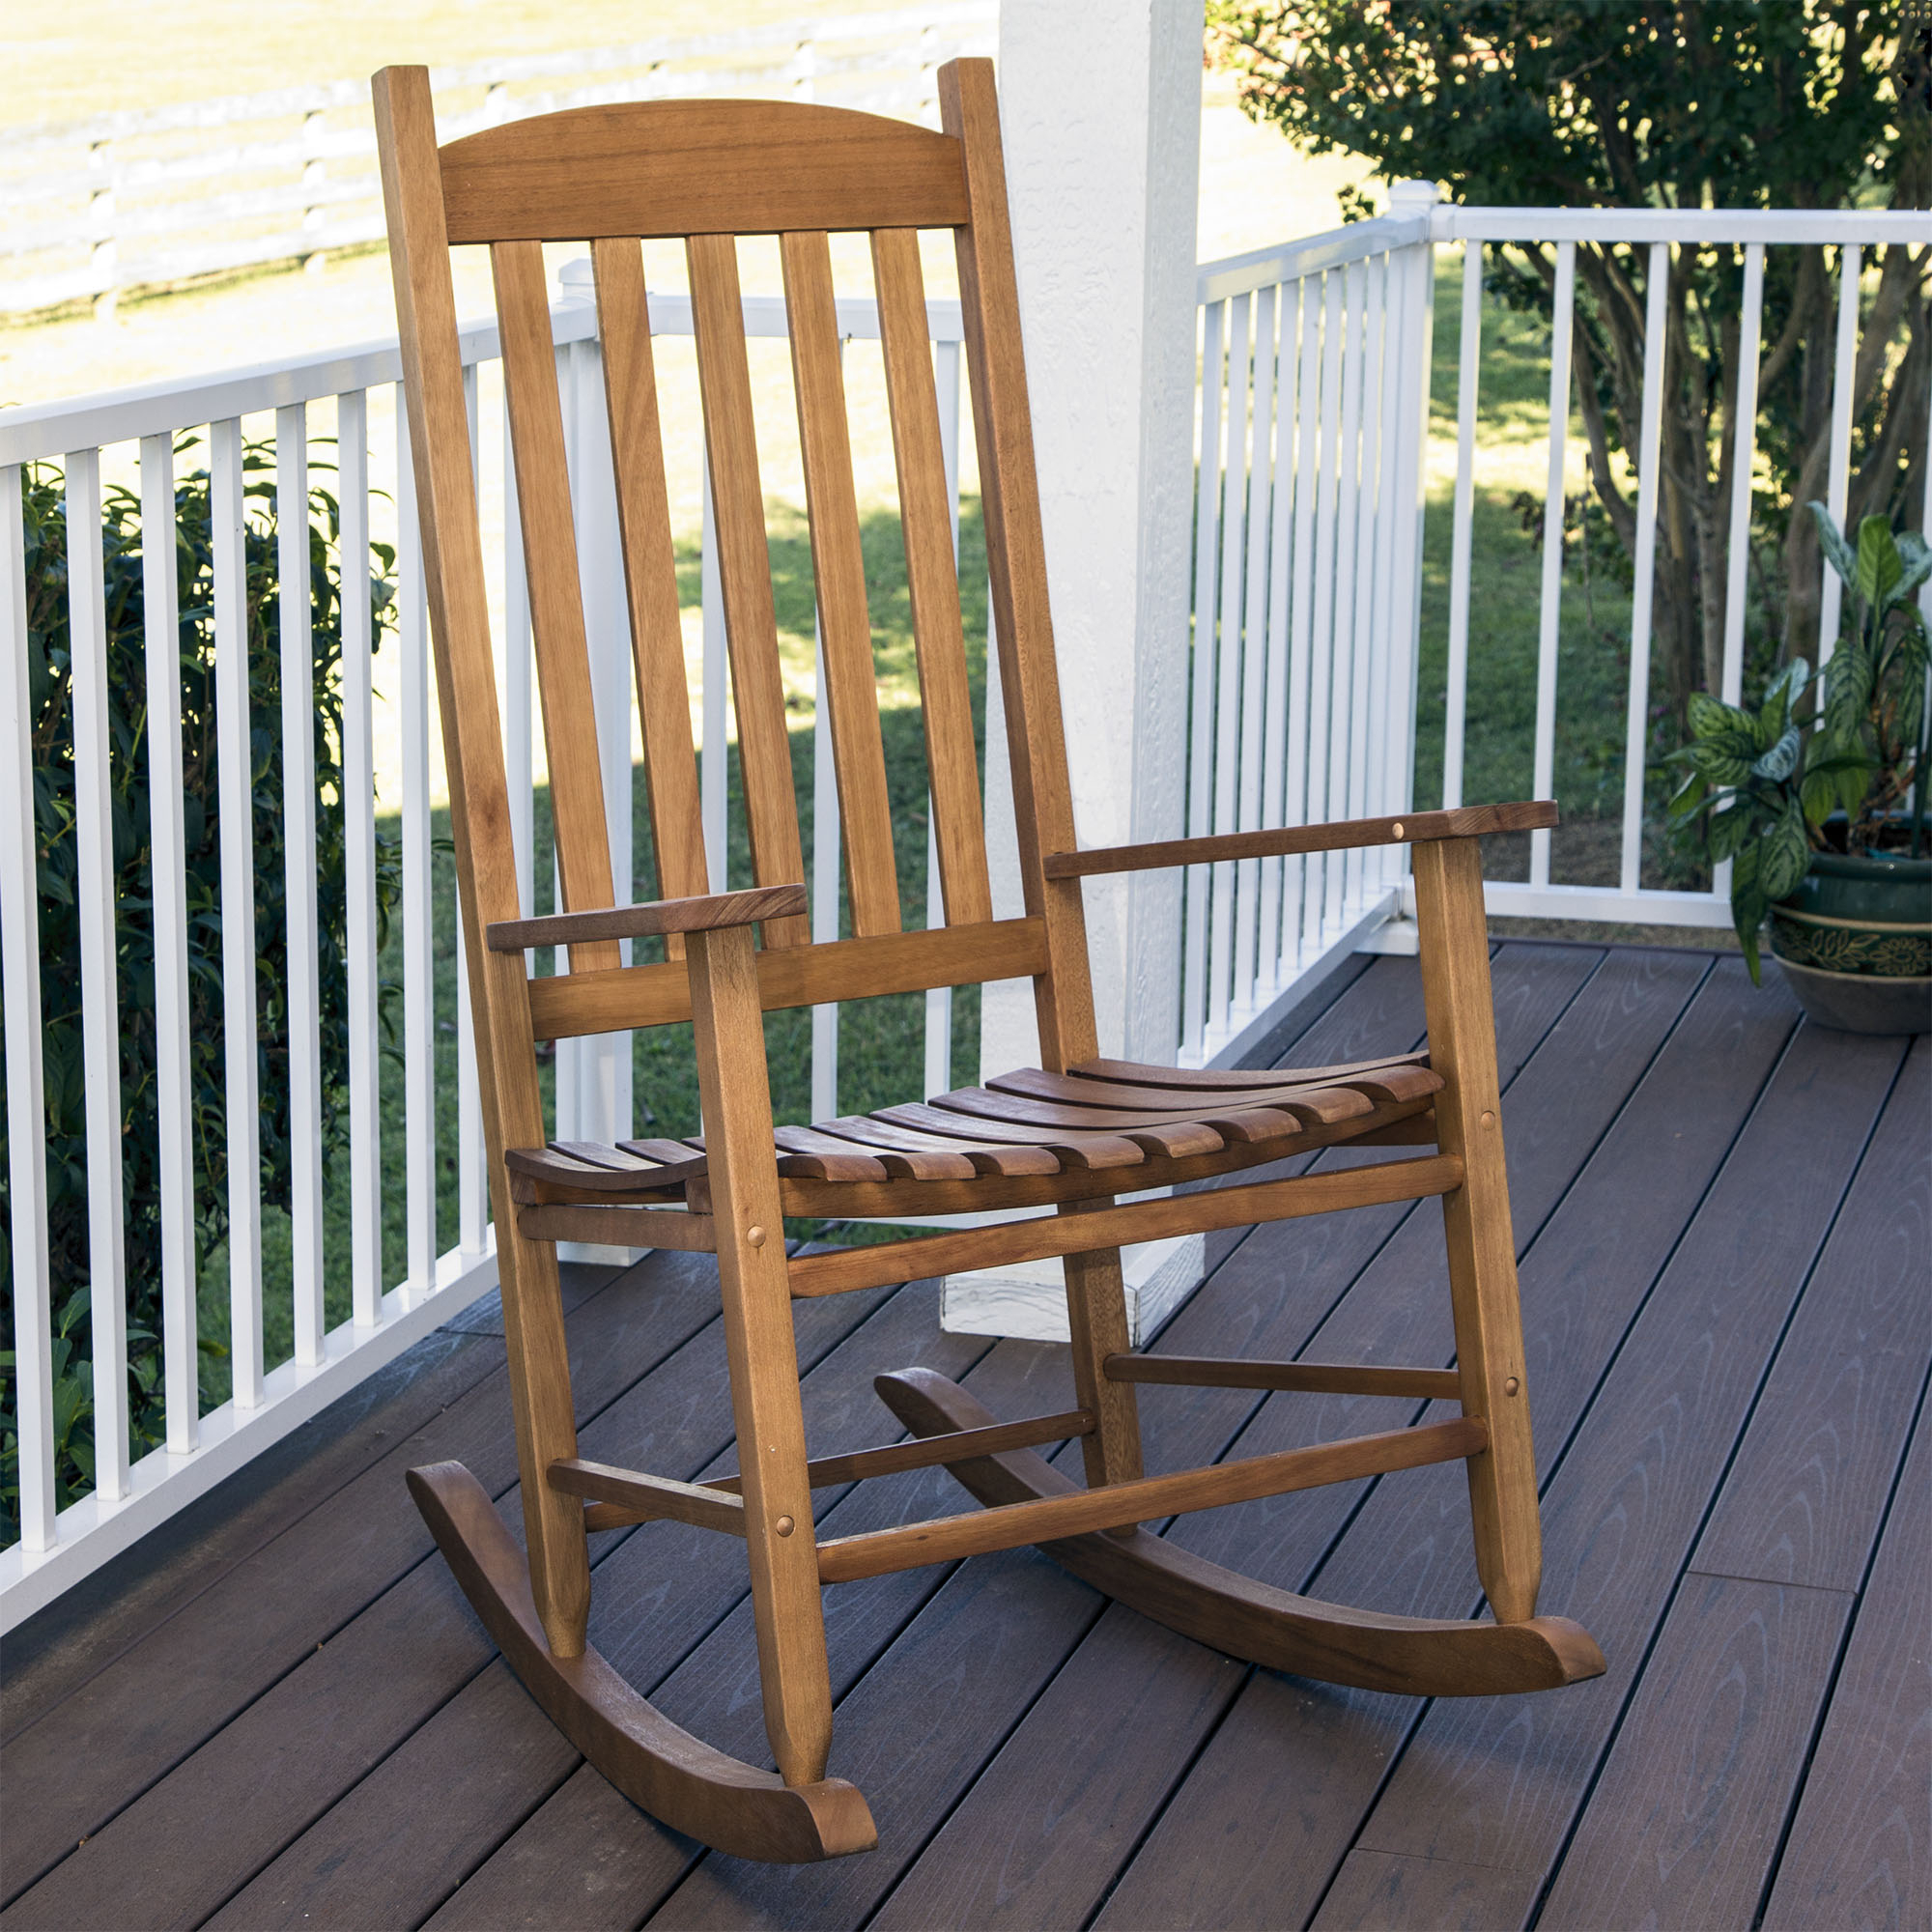 Mainstays Outdoor Wood Slat Rocking Chair Pertaining To Indoor / Outdoor Porch Slat Rocking Chairs (#13 of 20)